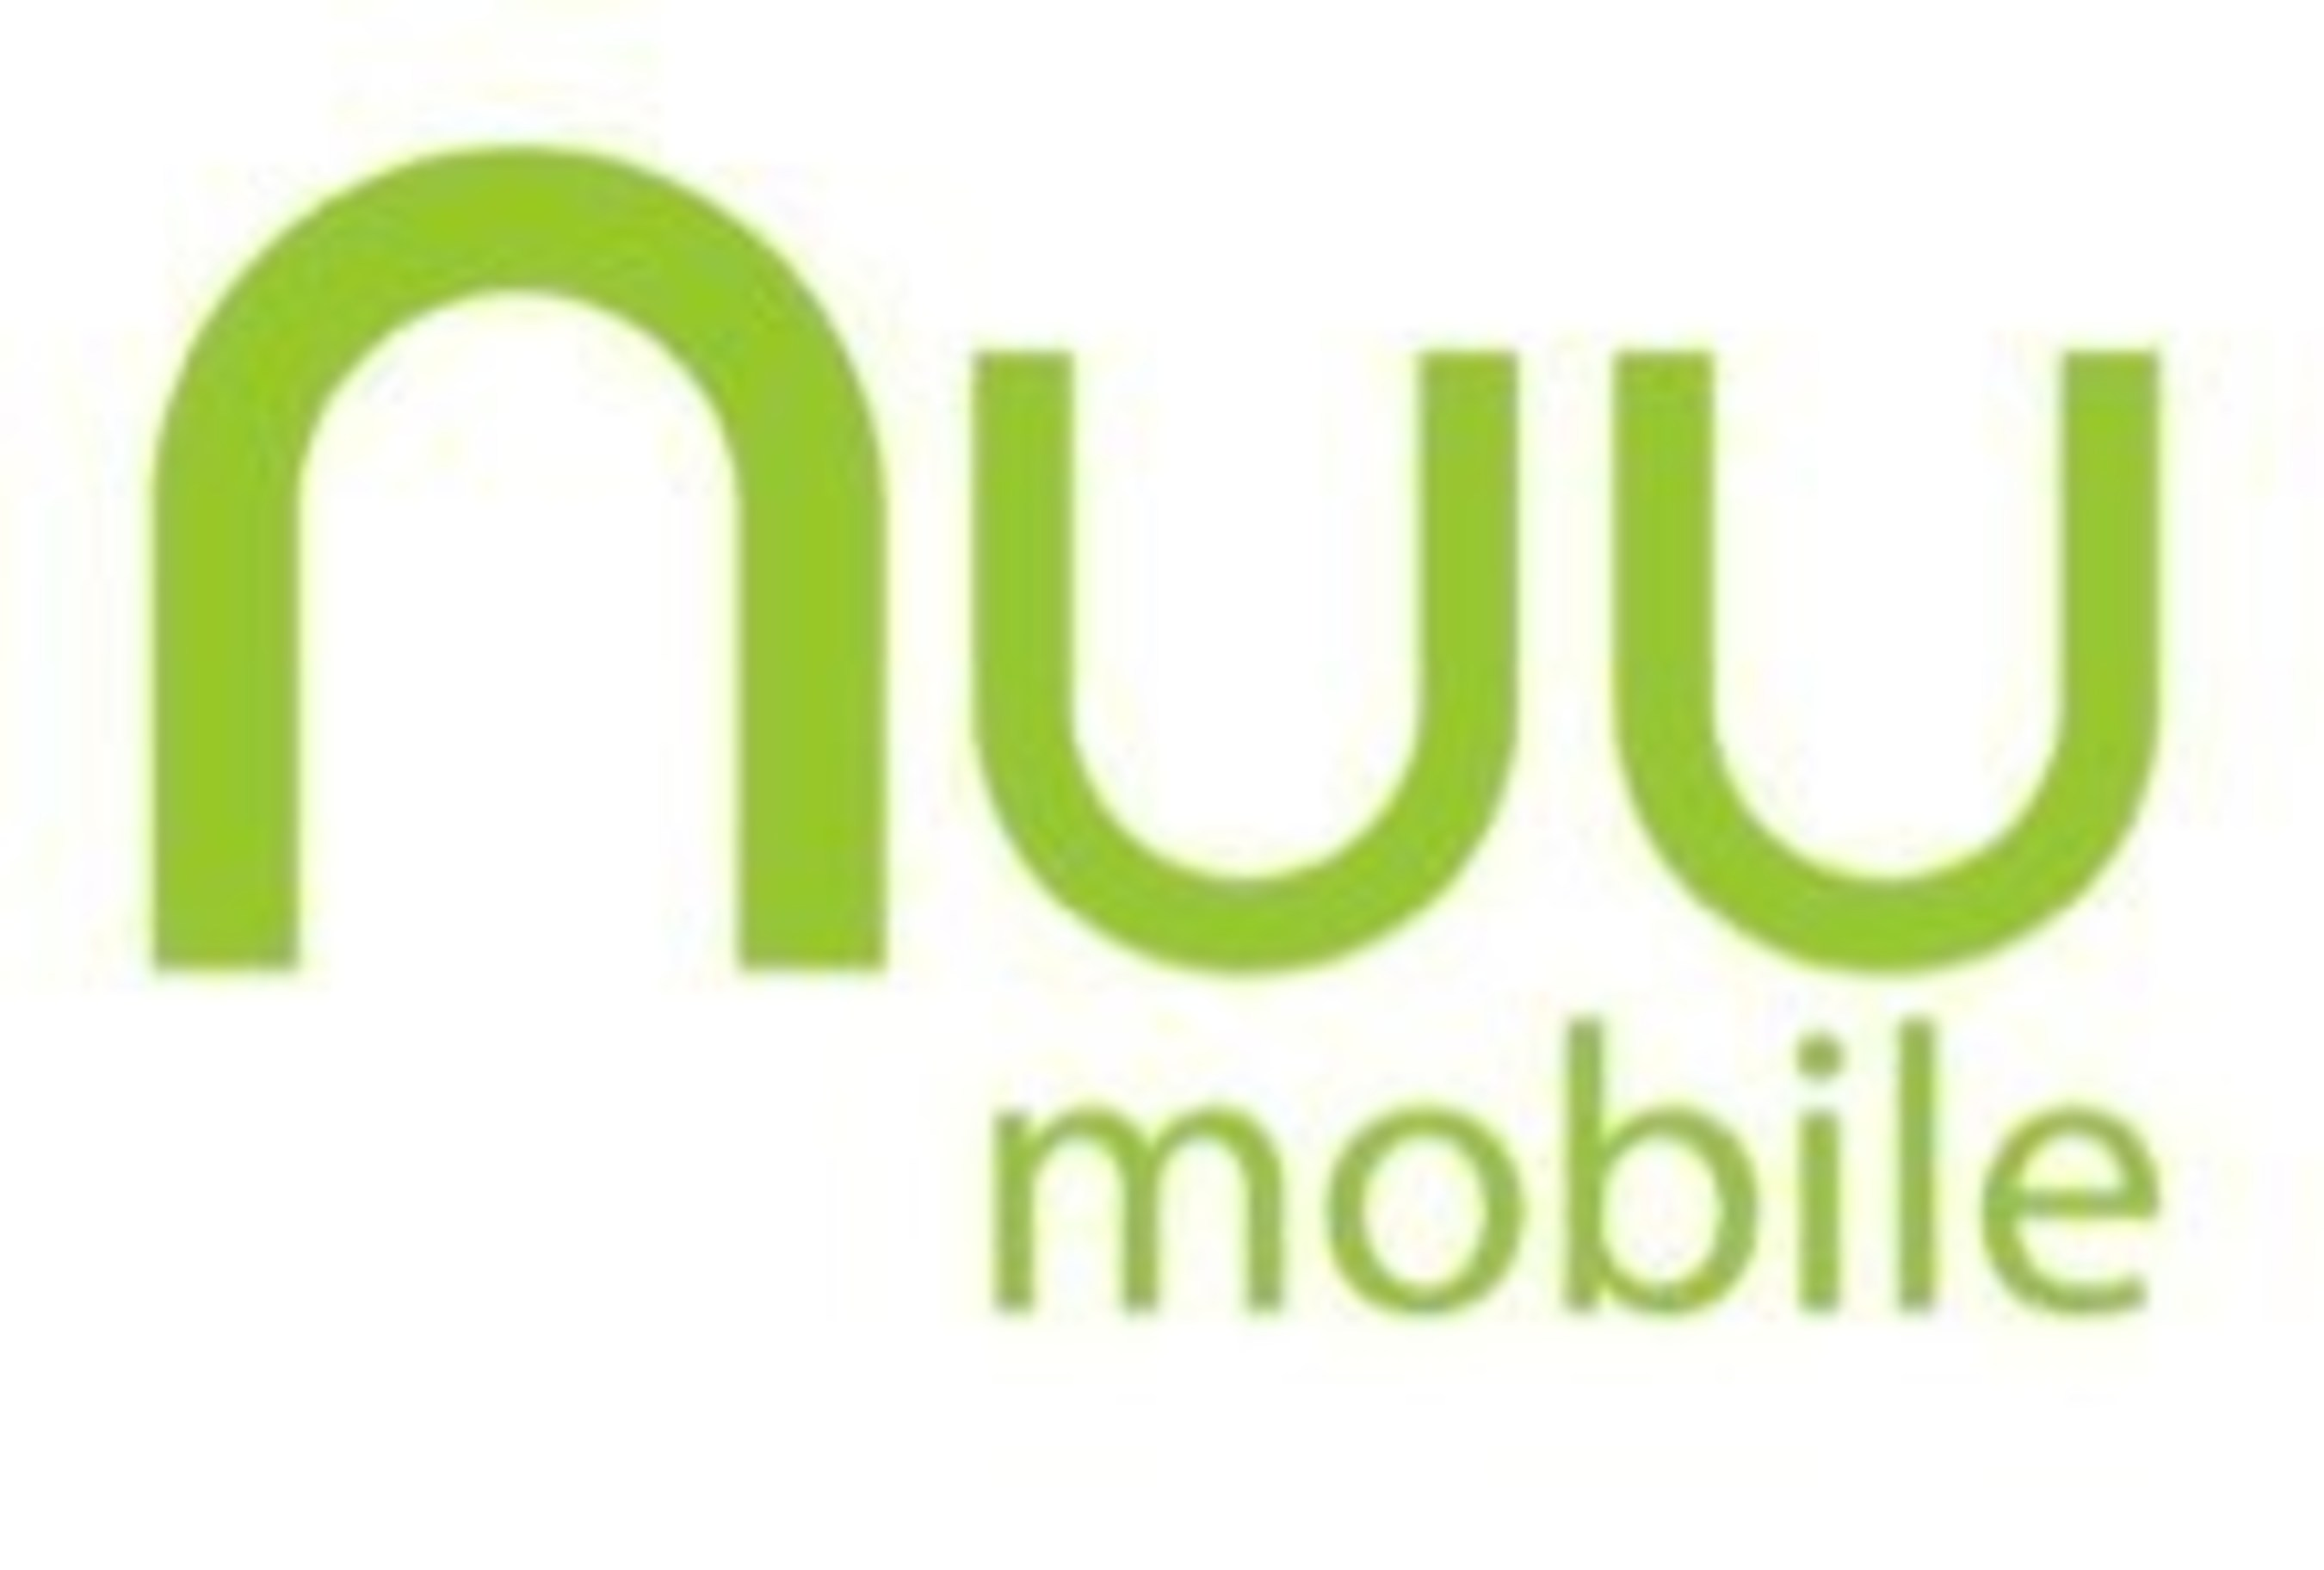 NUU Mobile's Z8 Flagship Android Smartphone Now Available